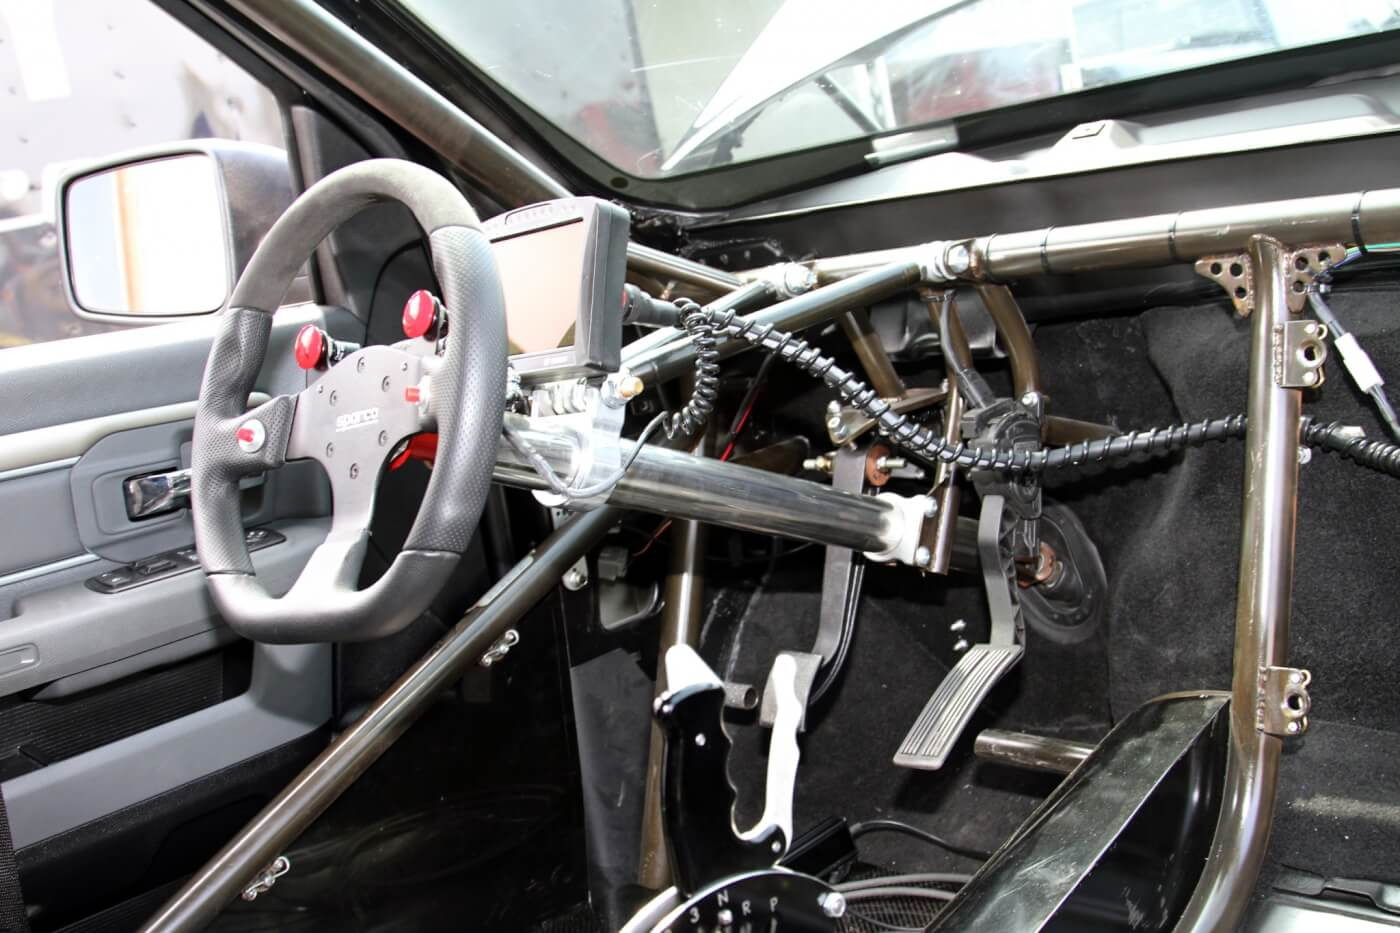 The roll cage provides a solid anchor point for the steering column and pedal assemblies. Milliken has a great view of the engine vitals with the Bosch Motorsport Display mounted in front of the Sparco steering wheel.